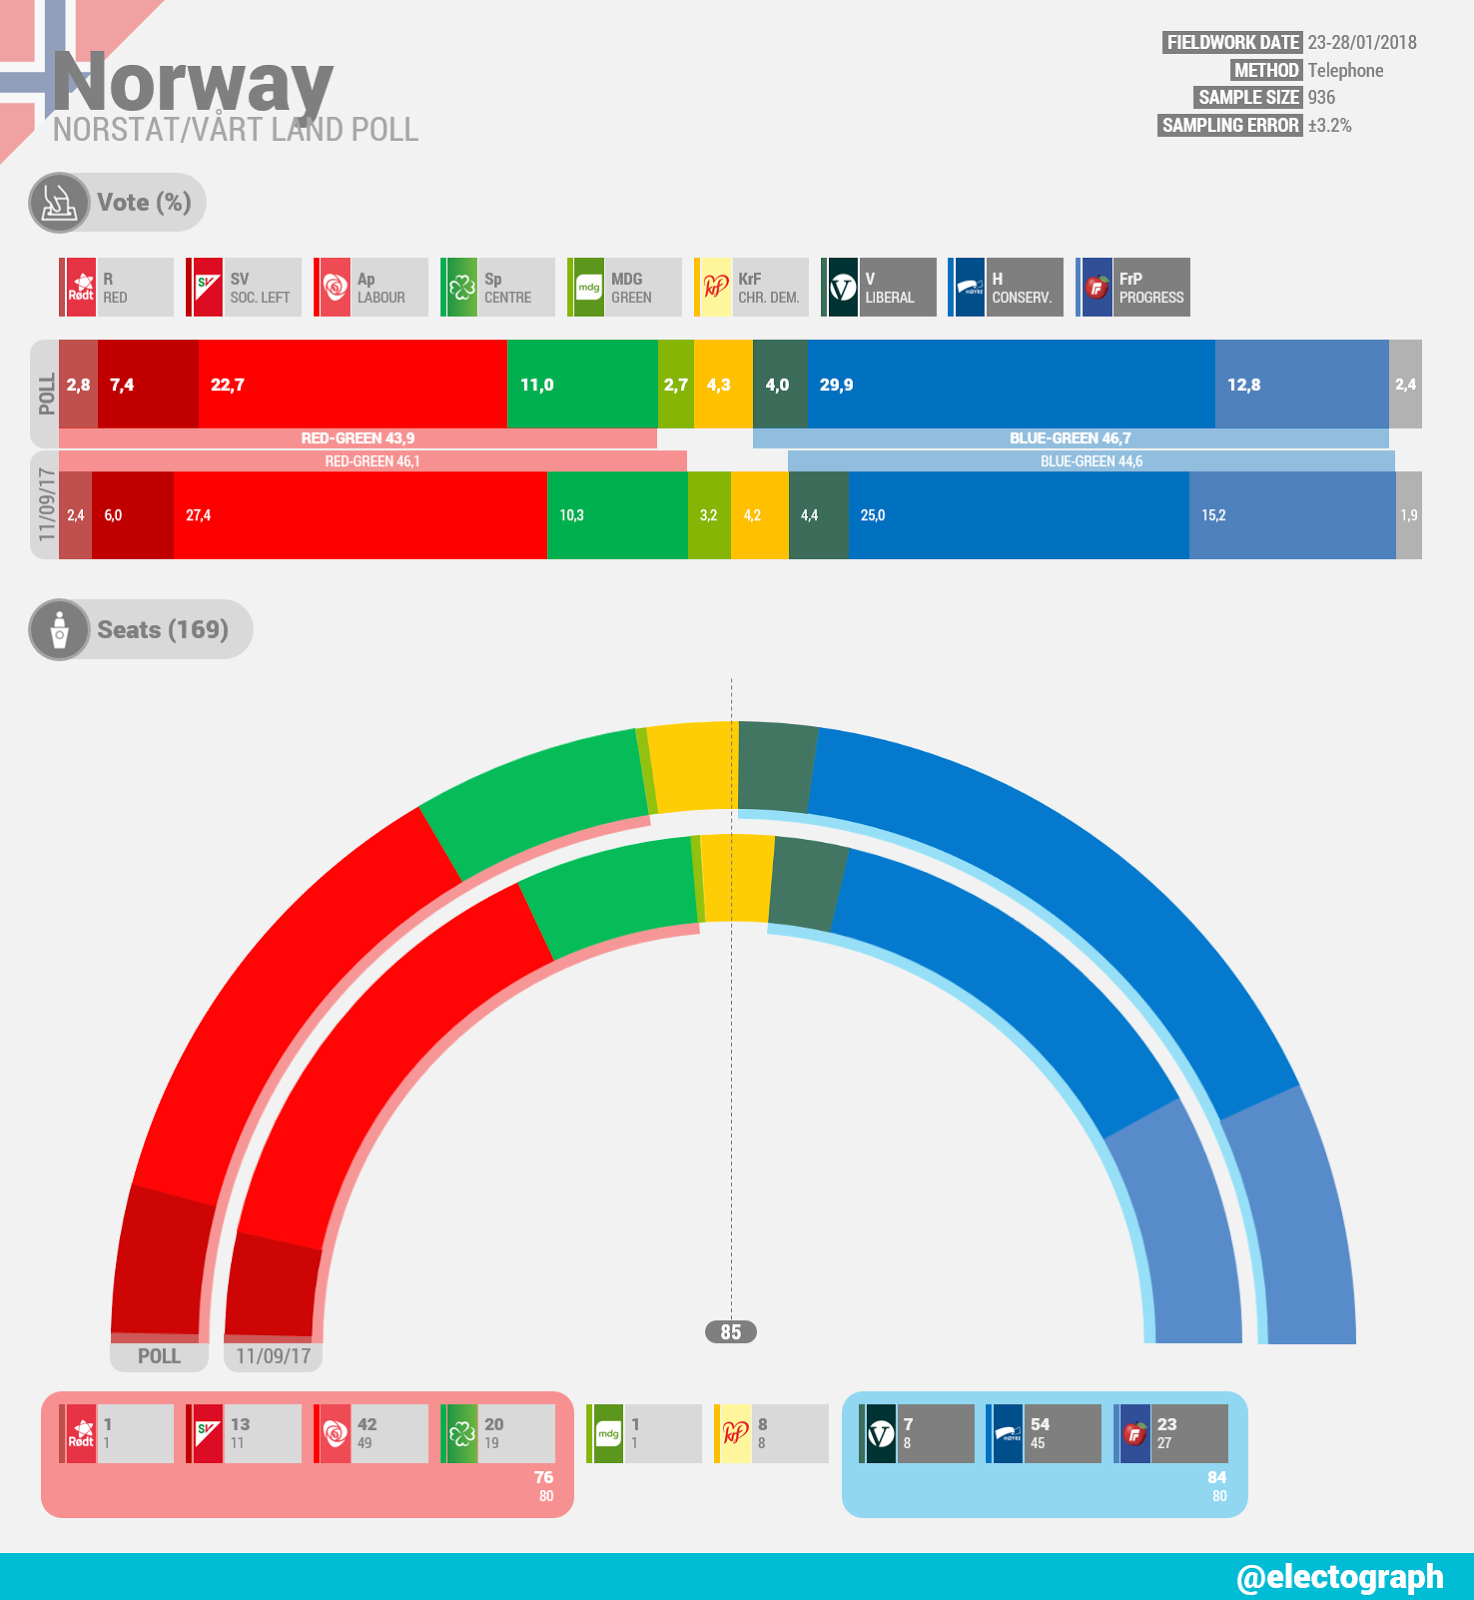 NORWAY Norstat poll chart for Vårt Land, January 2018